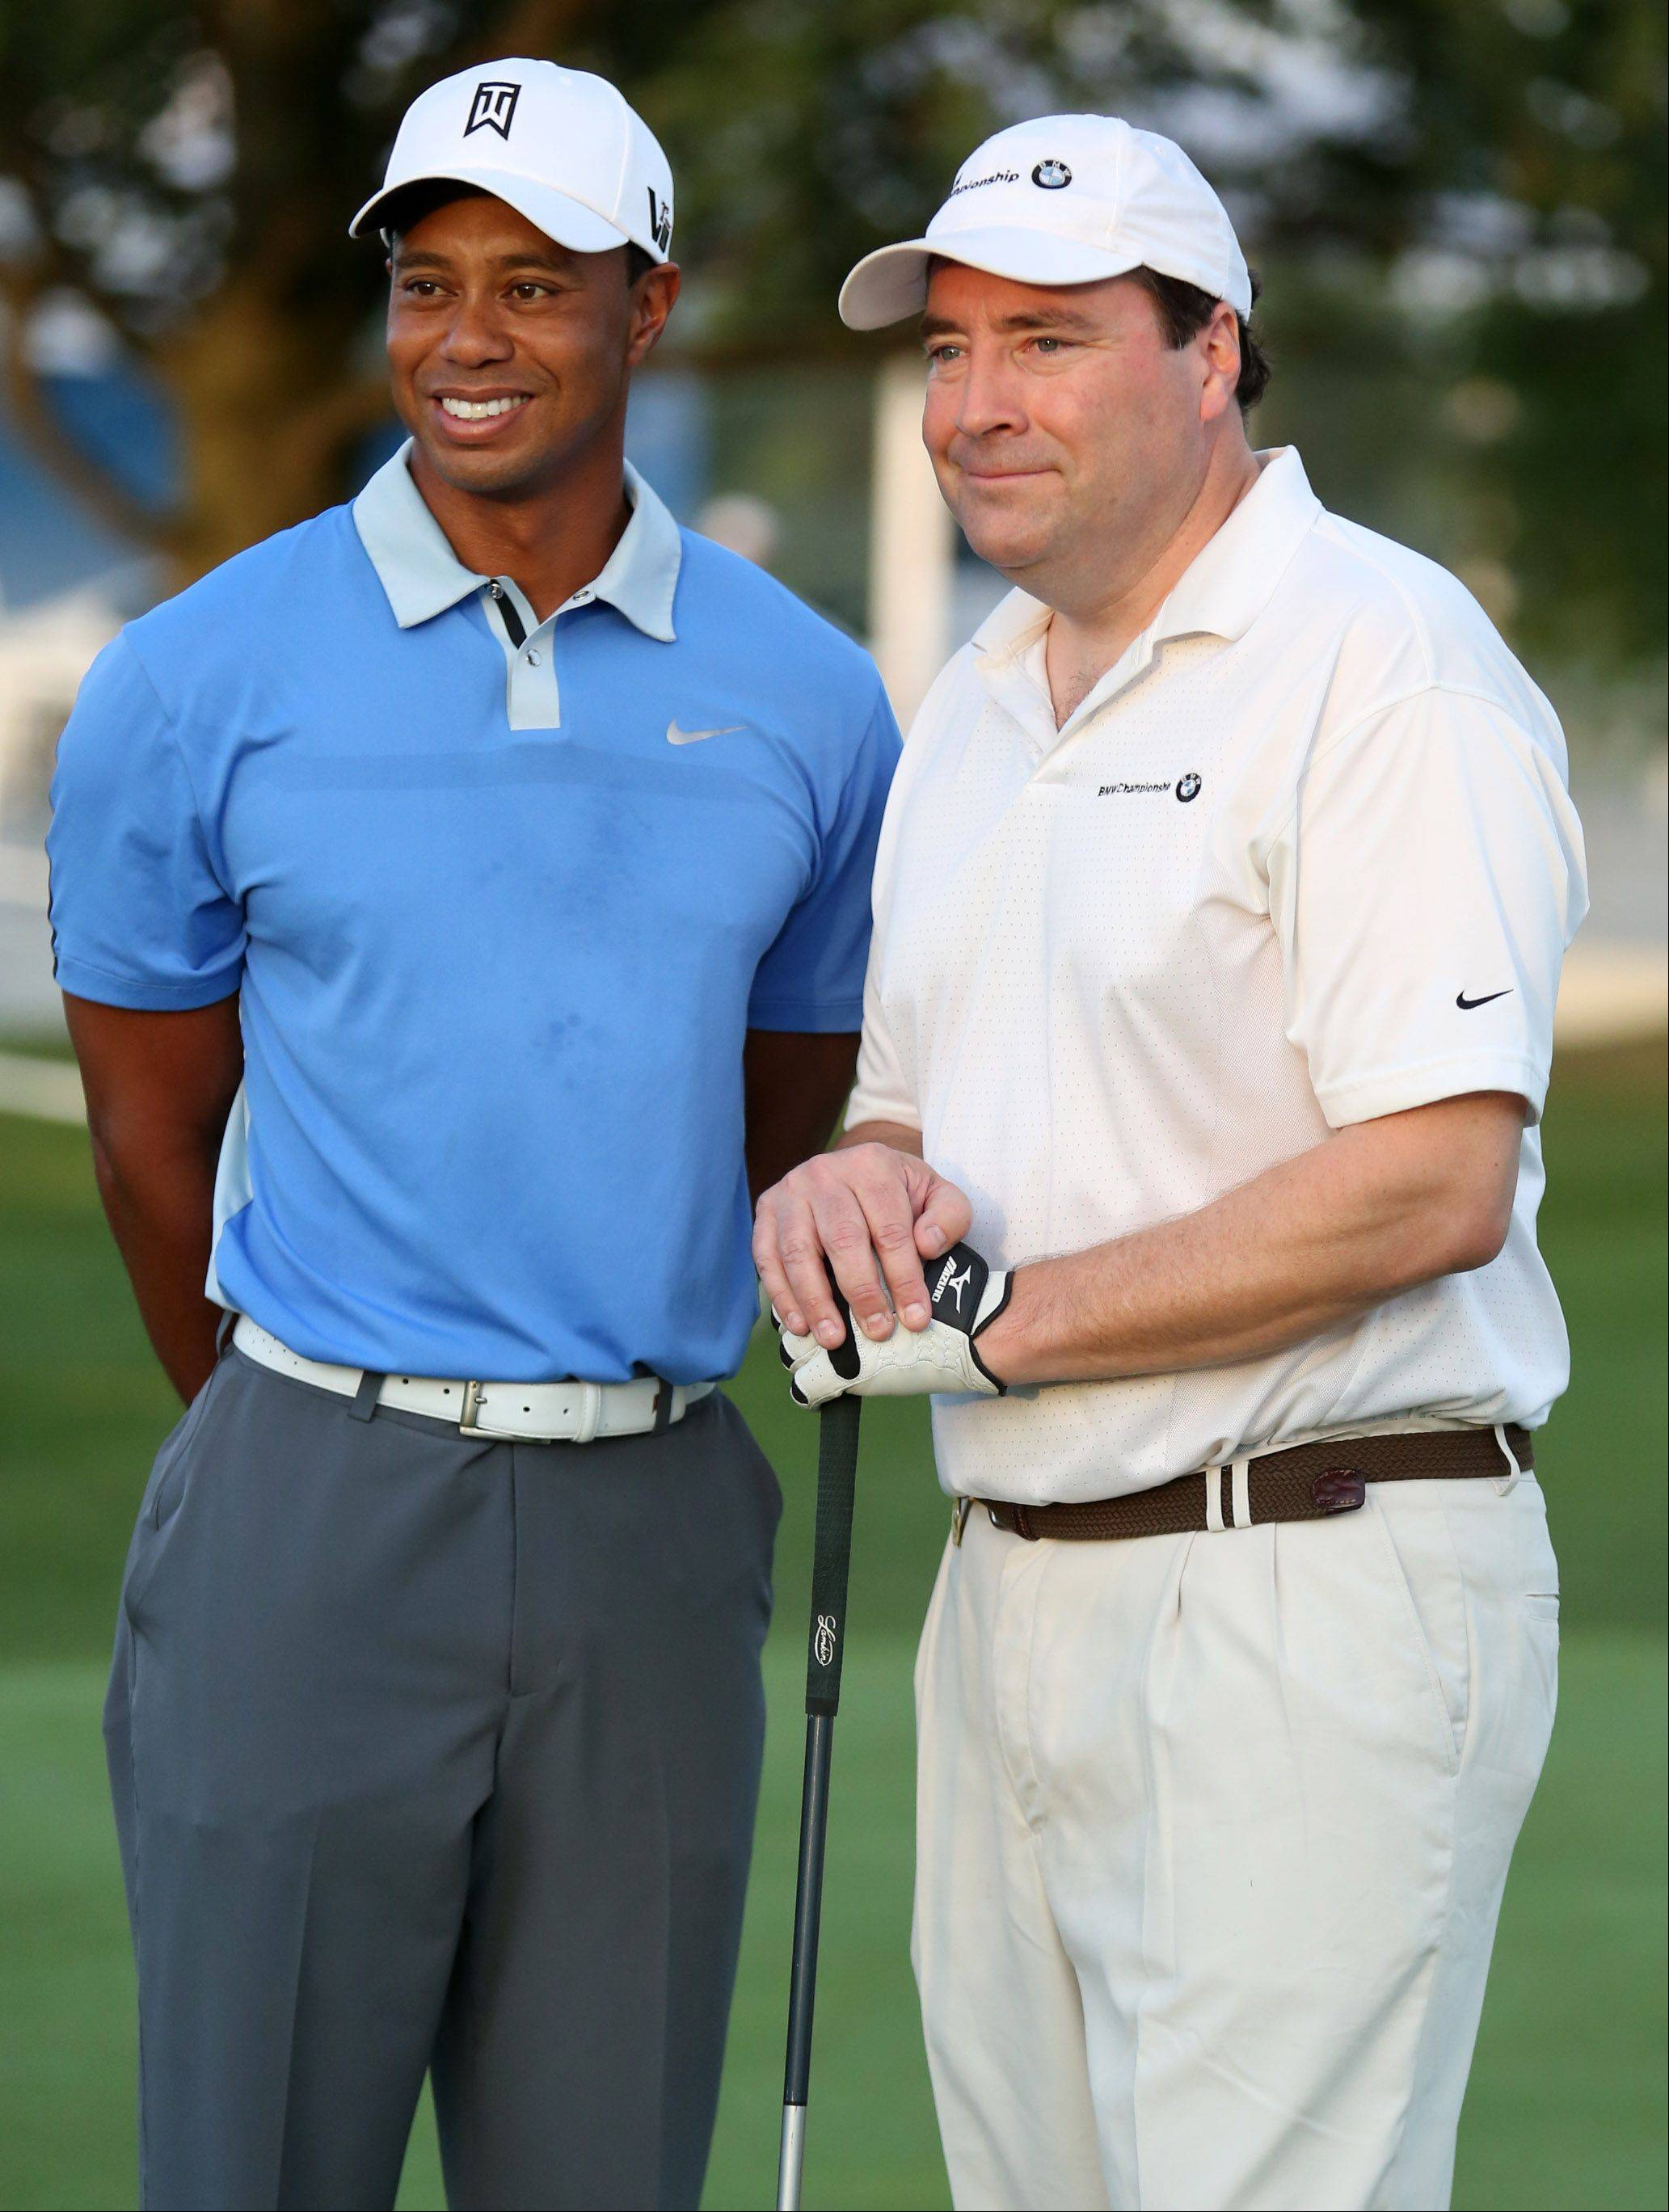 Phil LaBeau of Naperville was on of four on Tiger Woods' team.